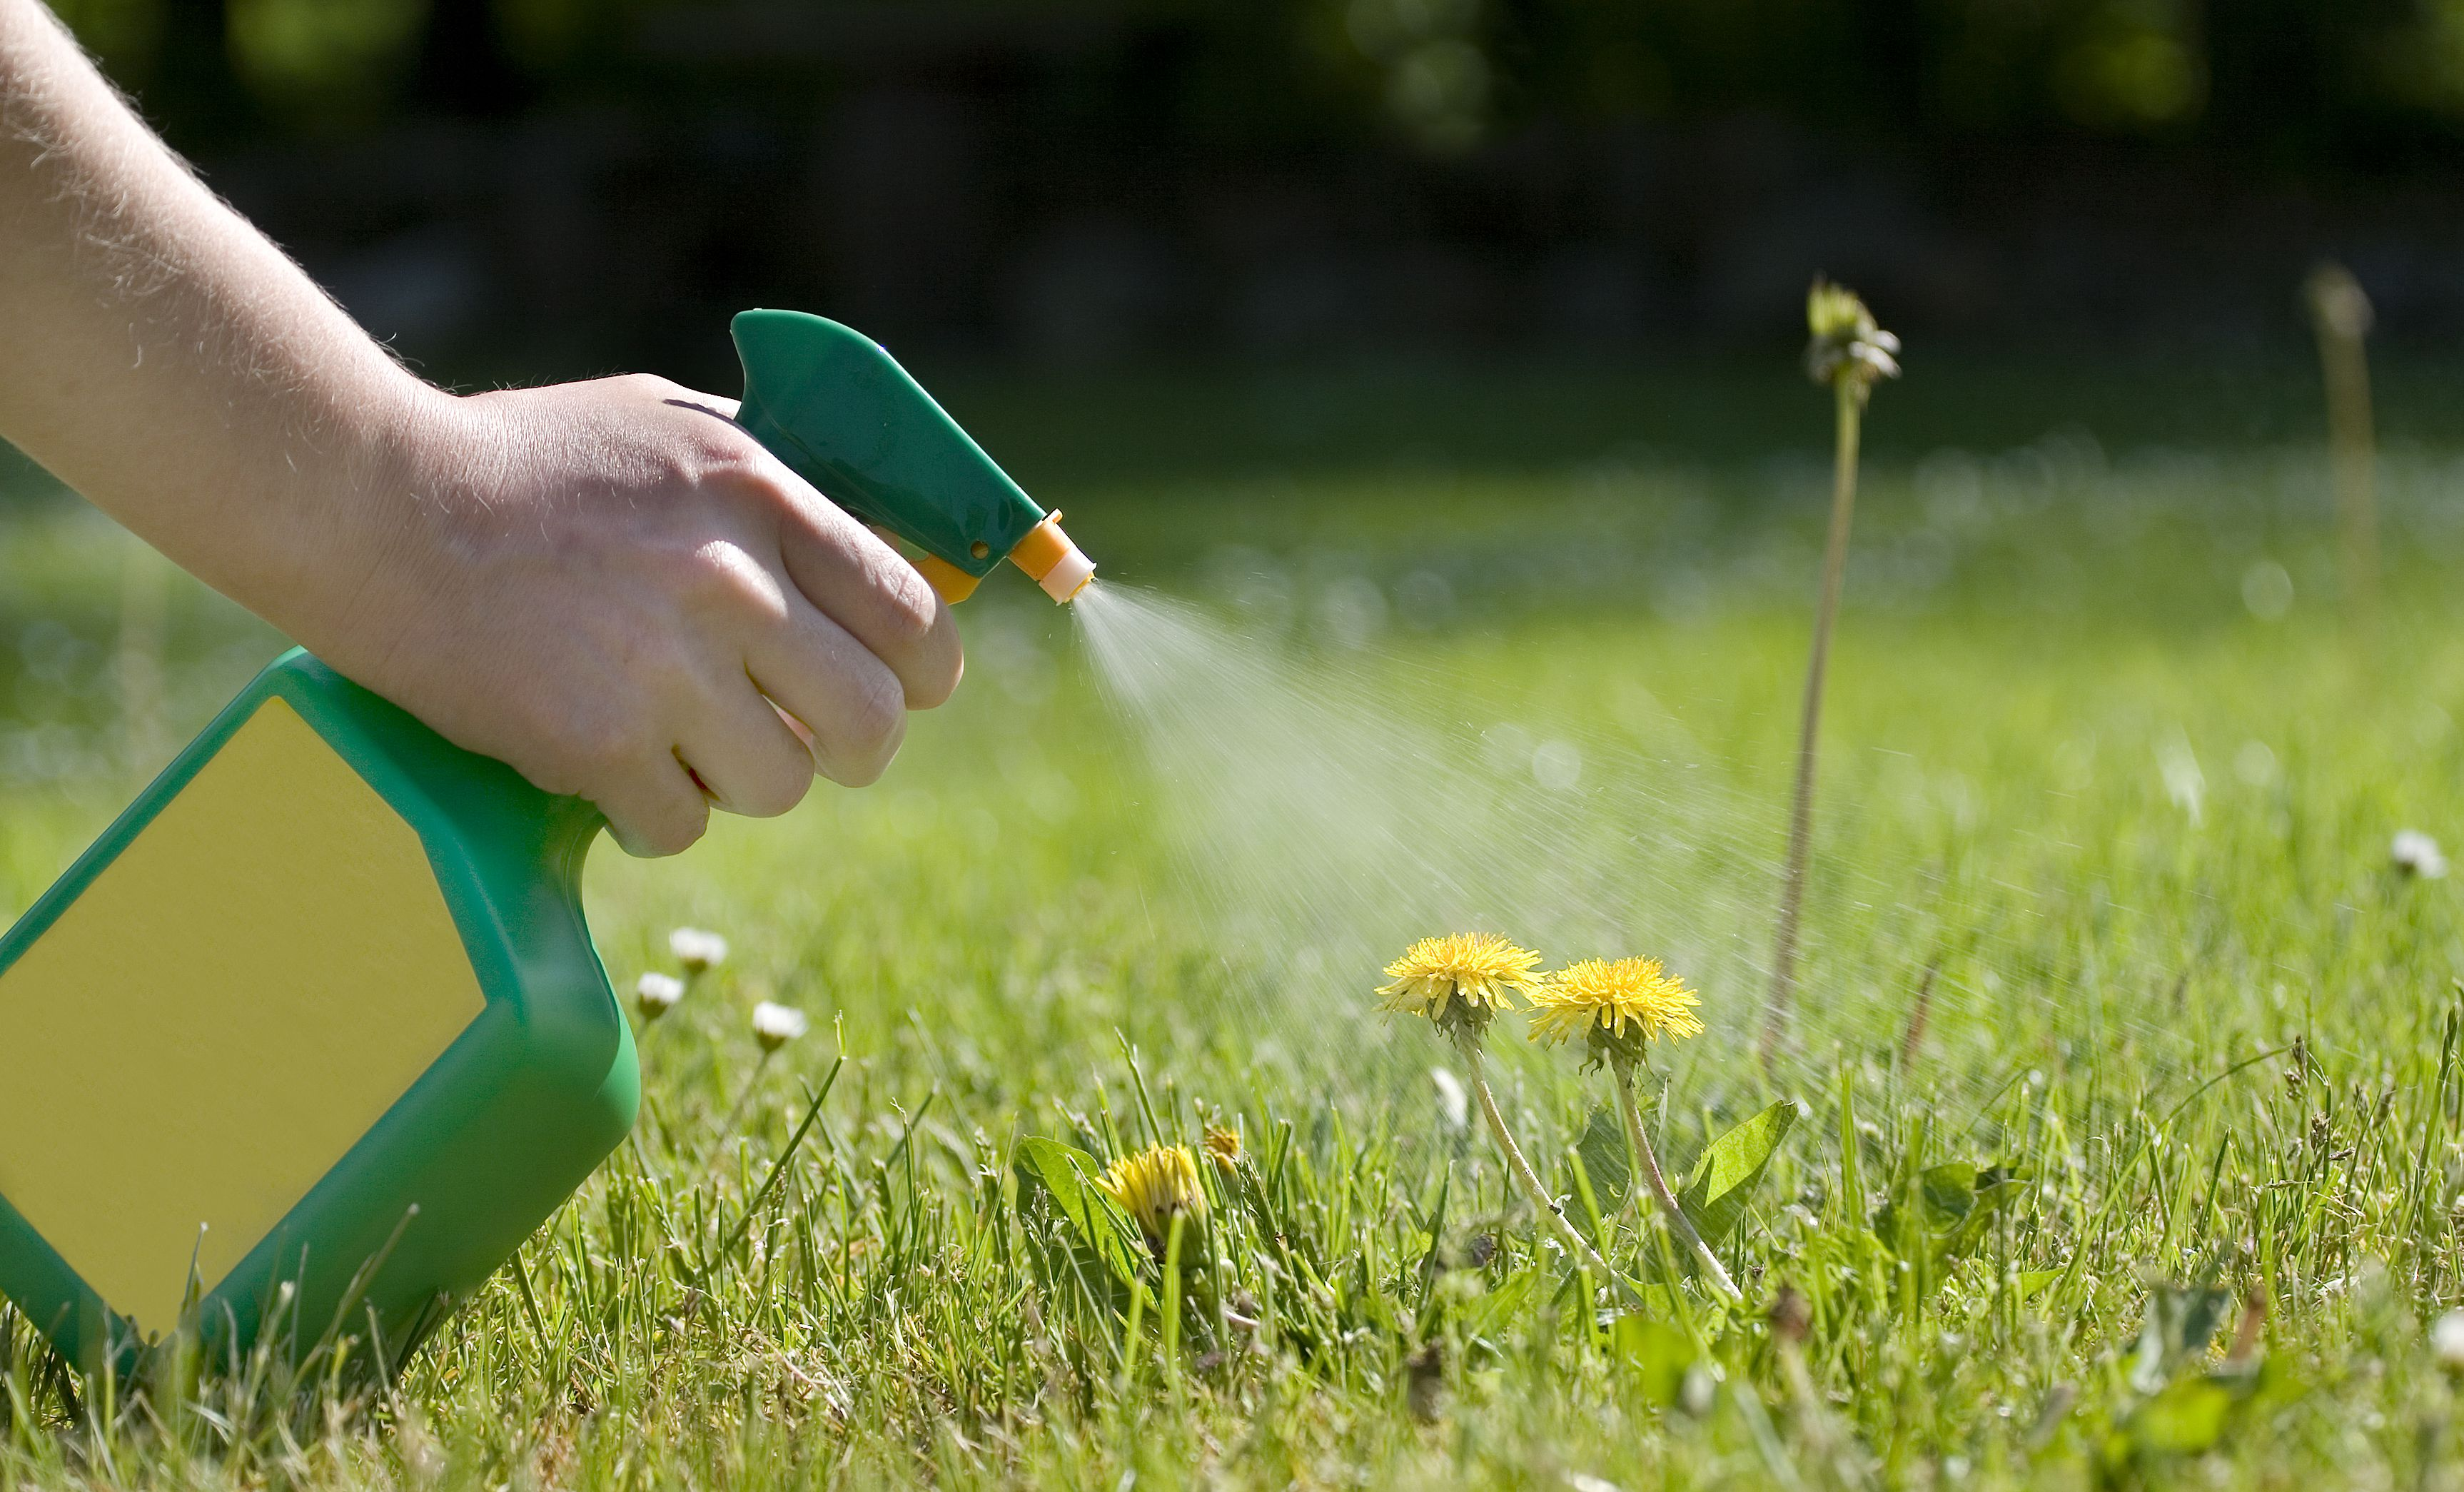 spraying the dandelions - Dandelions  —  Guide For Effective Weed Removal With Herbicides